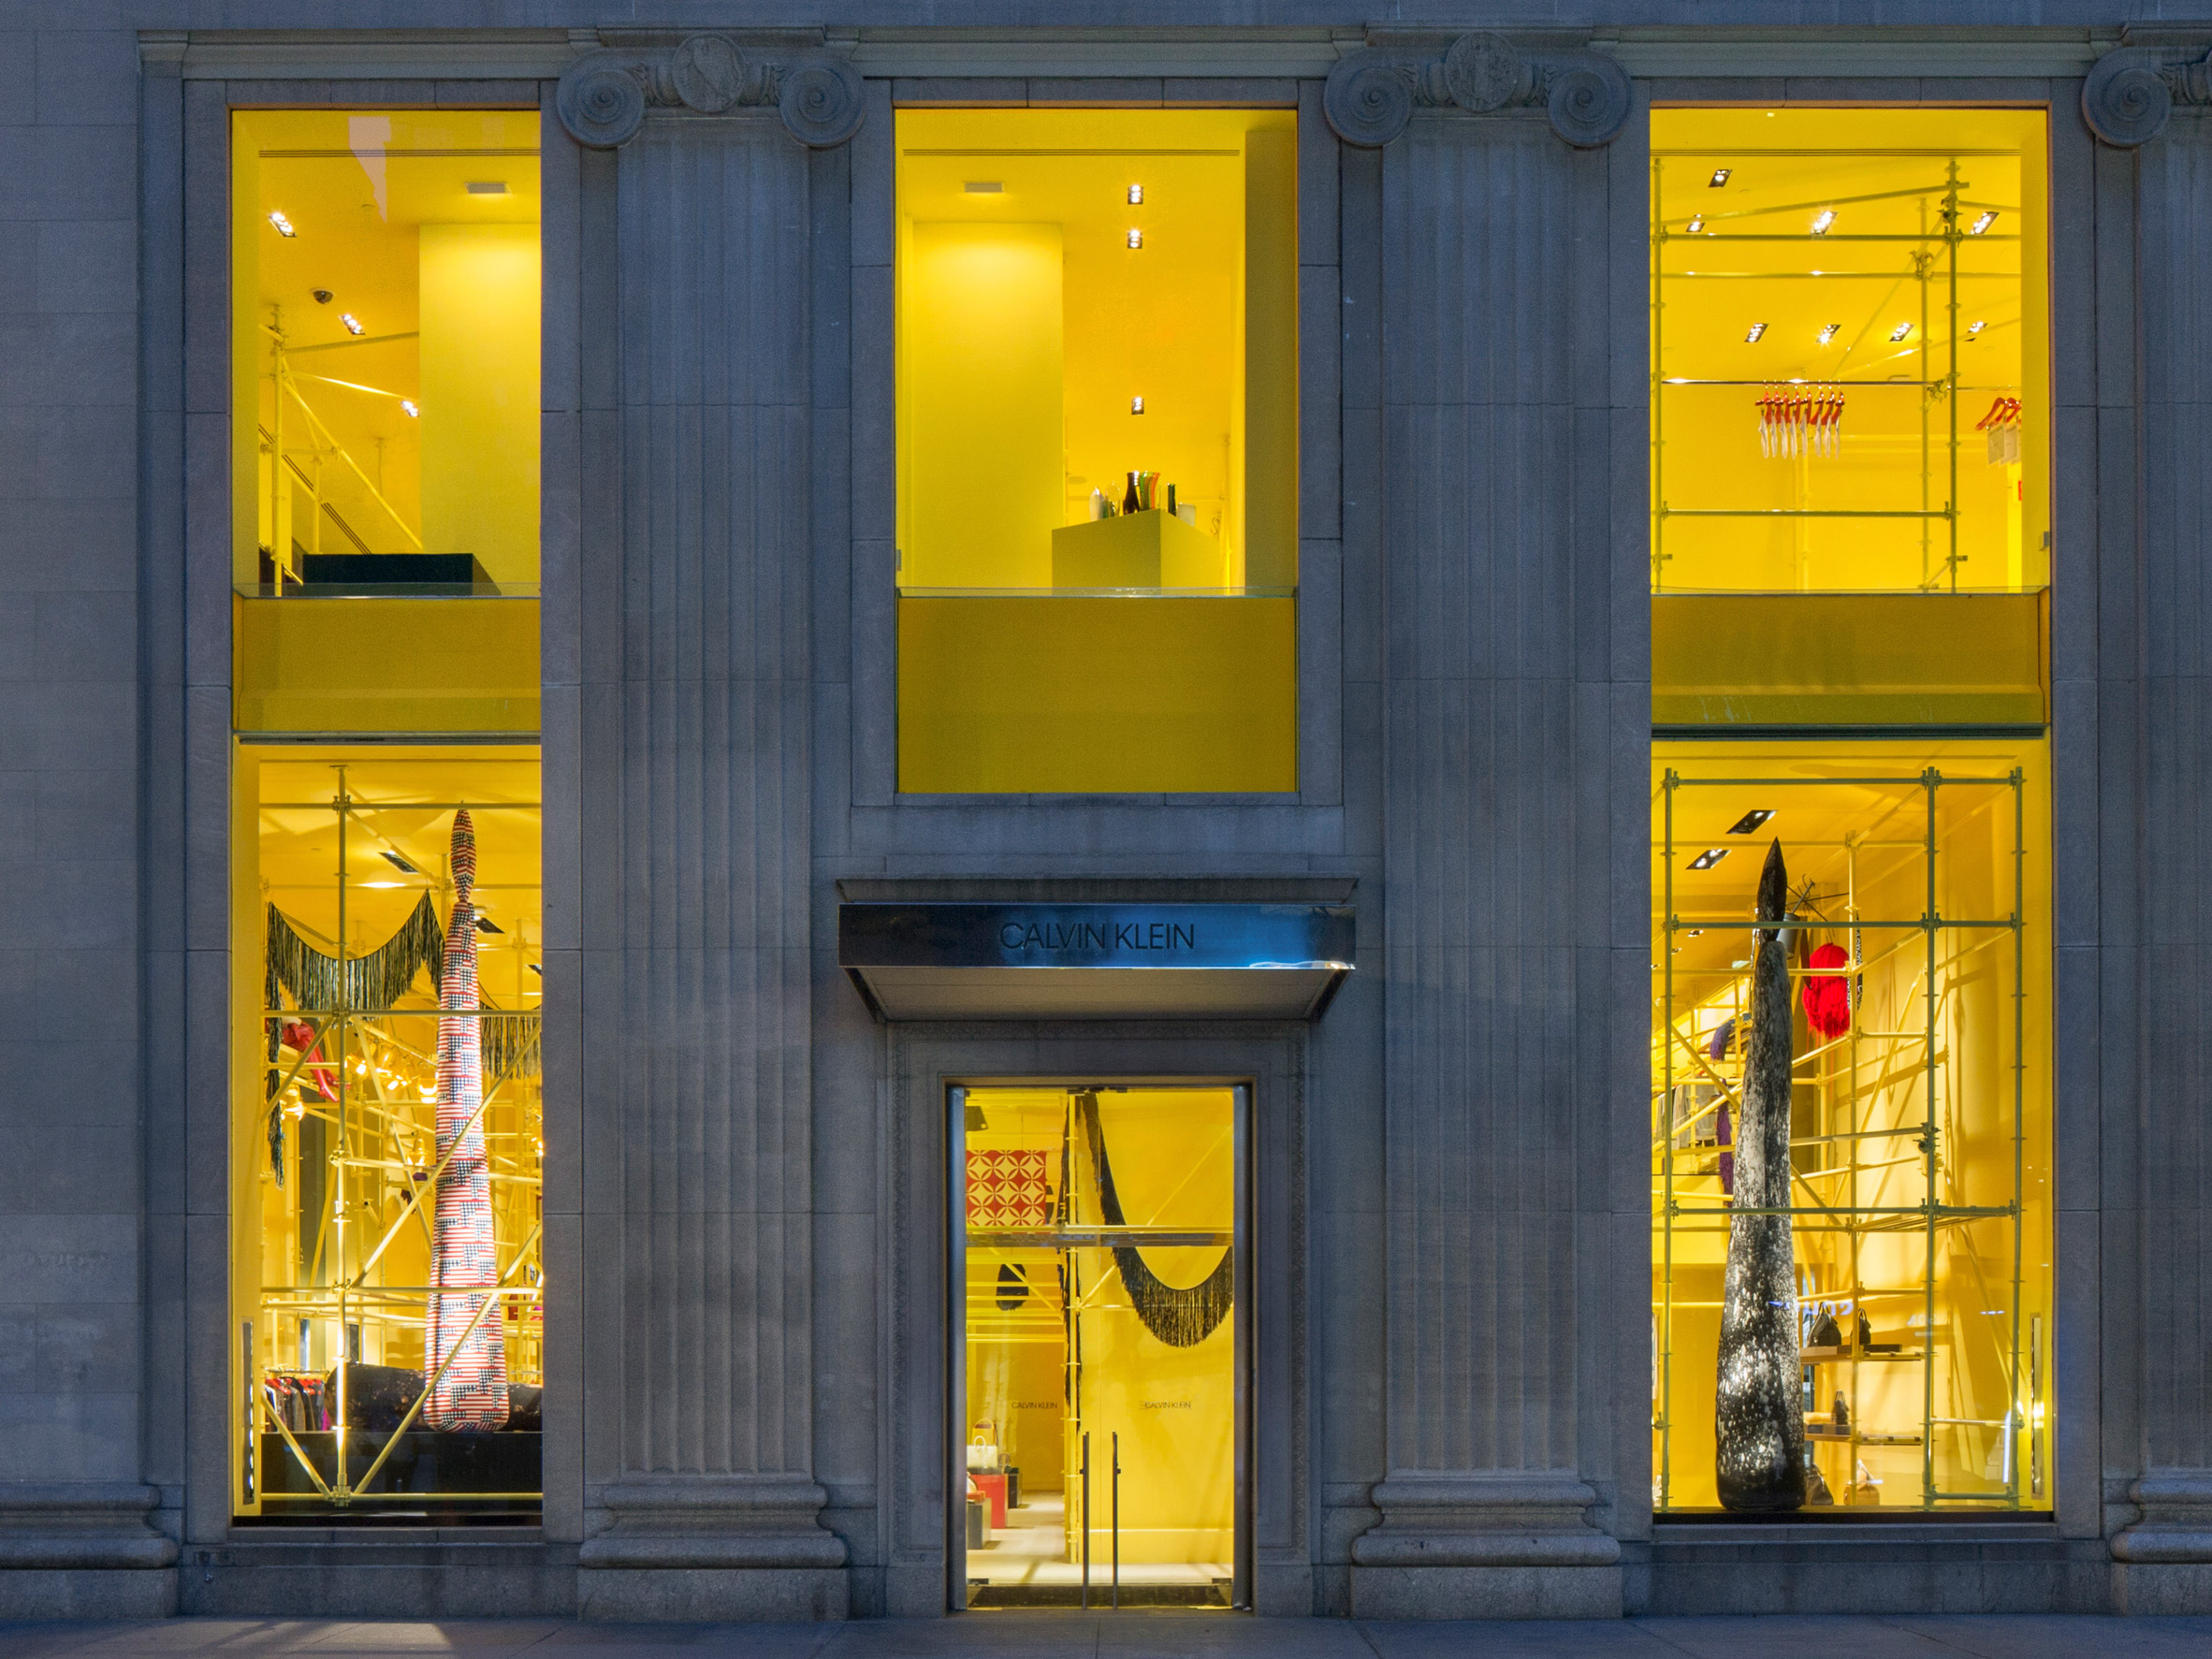 Raf Simons and Sterling Ruby transform Calvin Klein store with yellow scaffolding